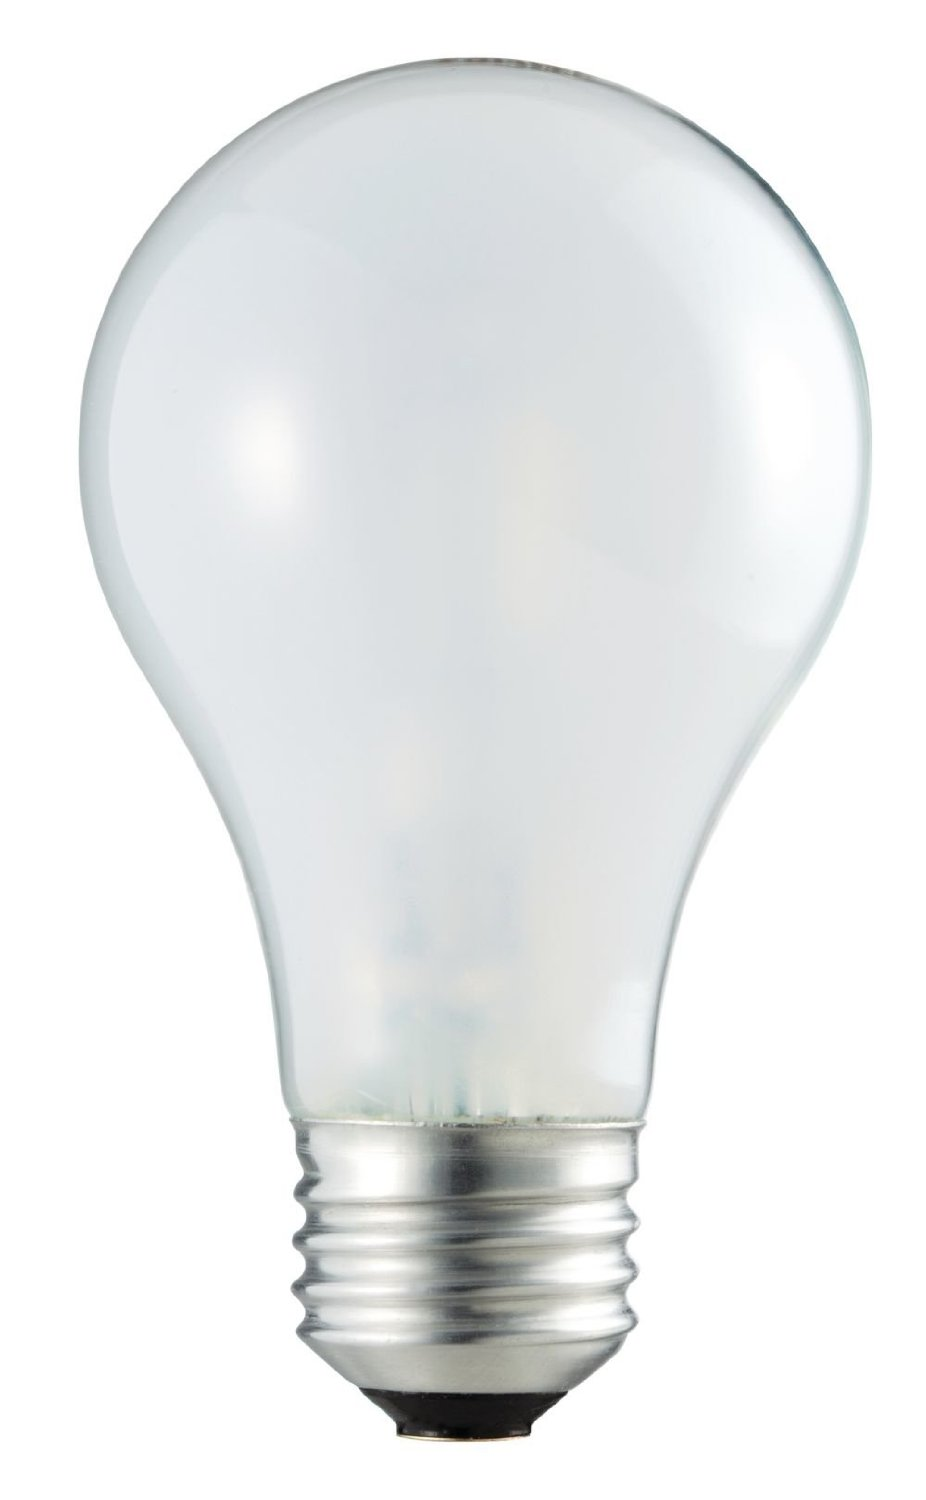 Buy Lightbulbs How To Buy Led Bulbs The Gormogons